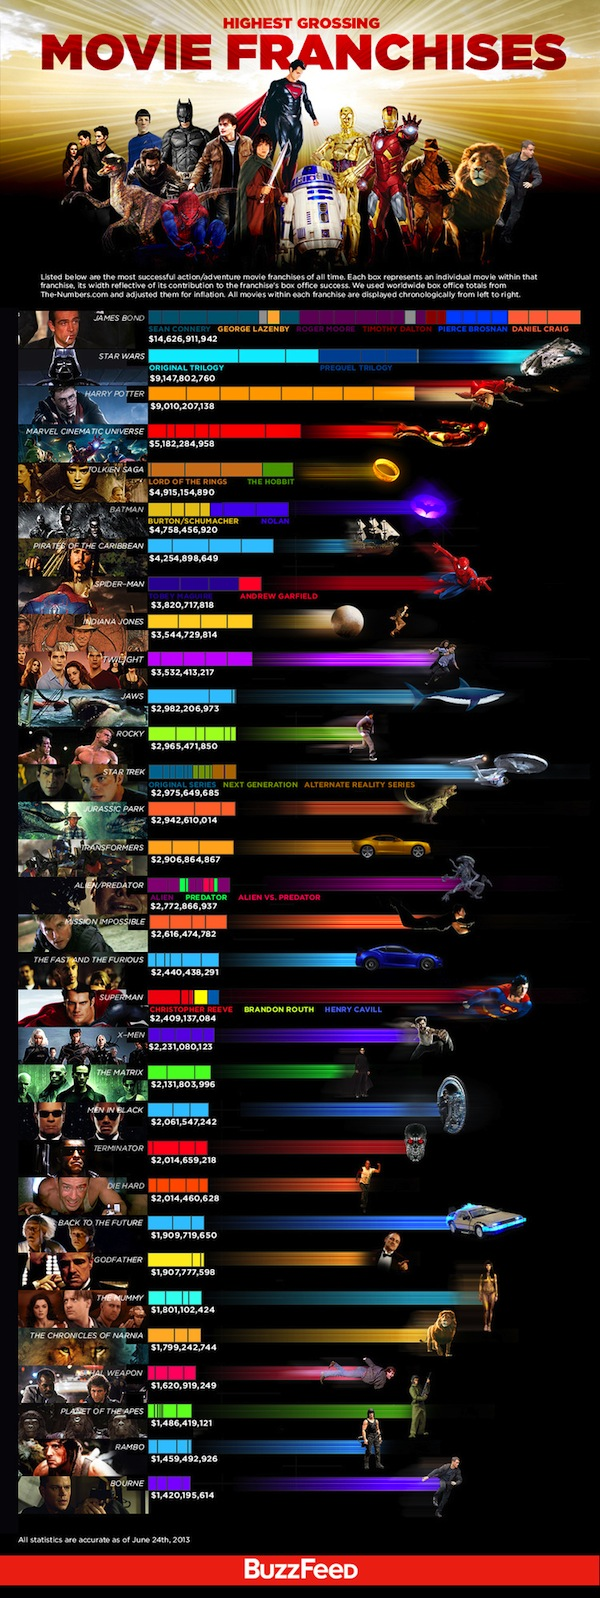 14. Highest grossing movie franchises